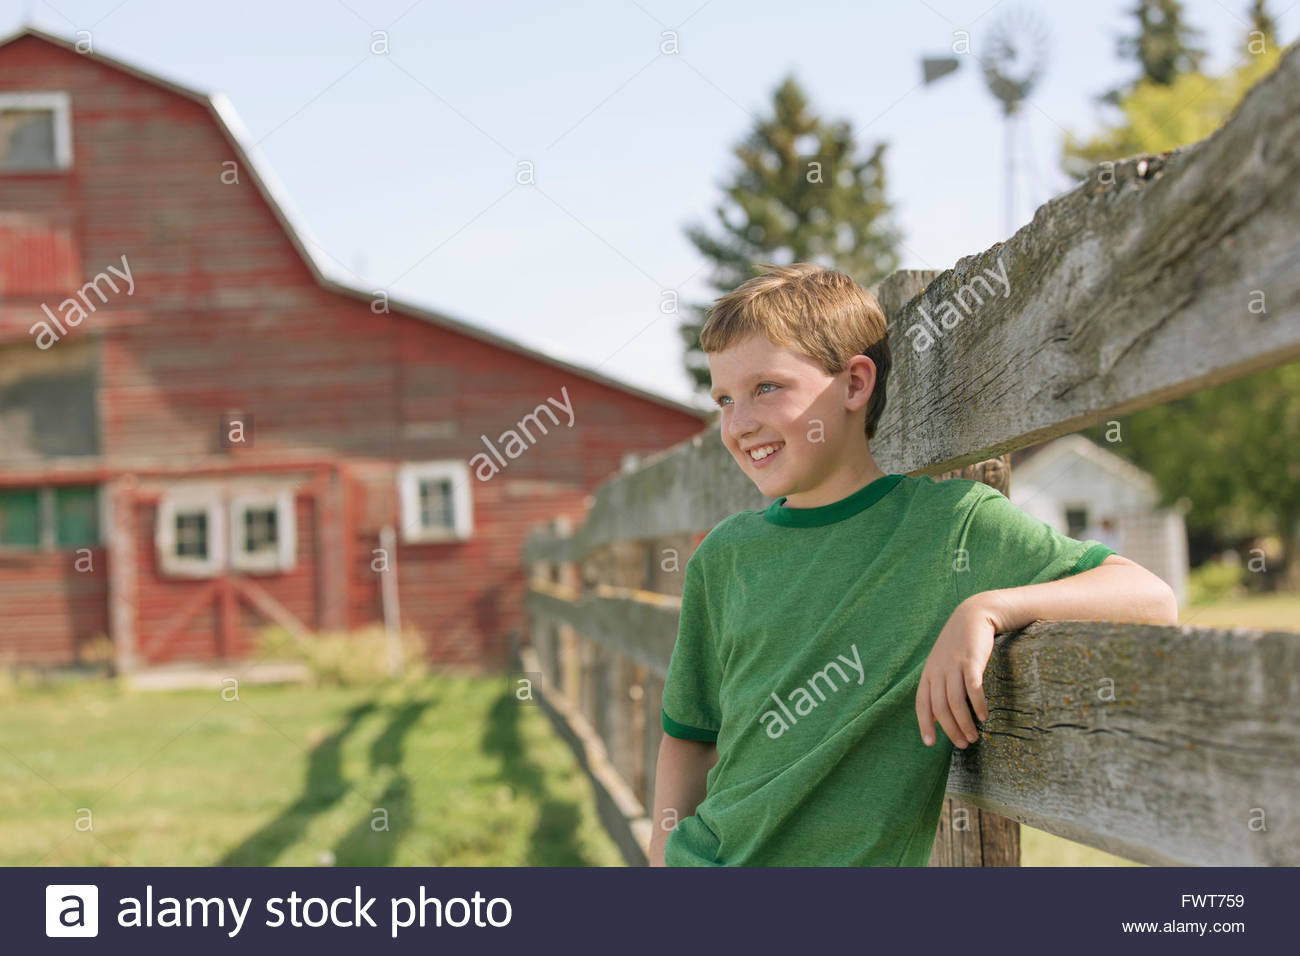 Young boy leaning on fence on rural property. Photo Stock